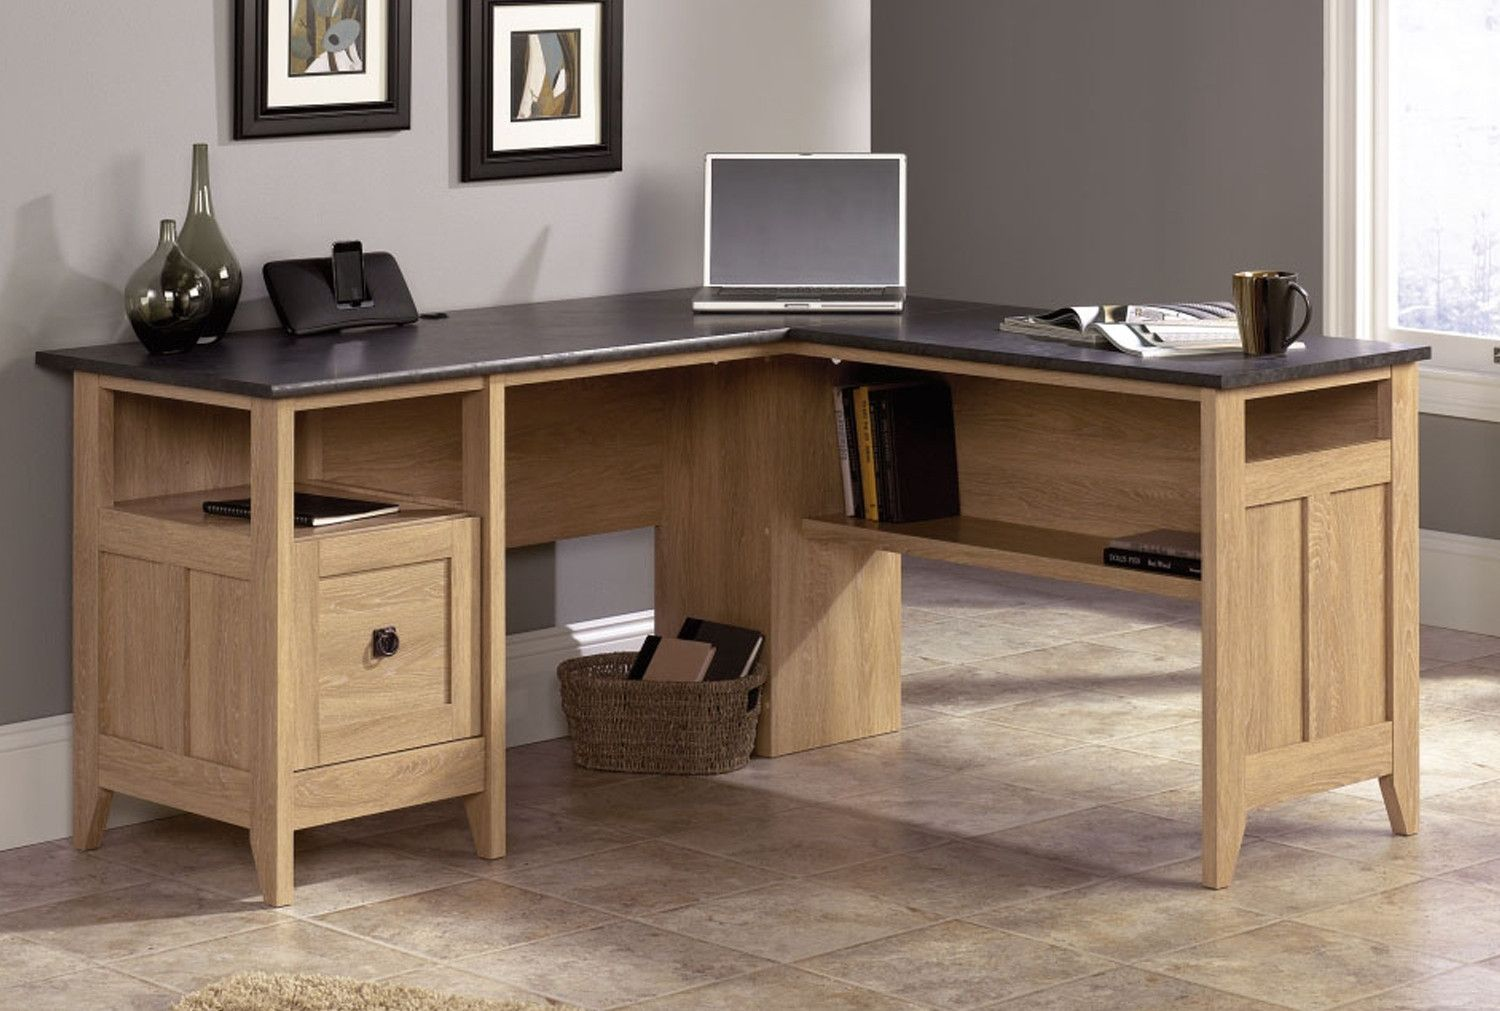 Portal L Shaped Workstation Furniture At Work® in 2020